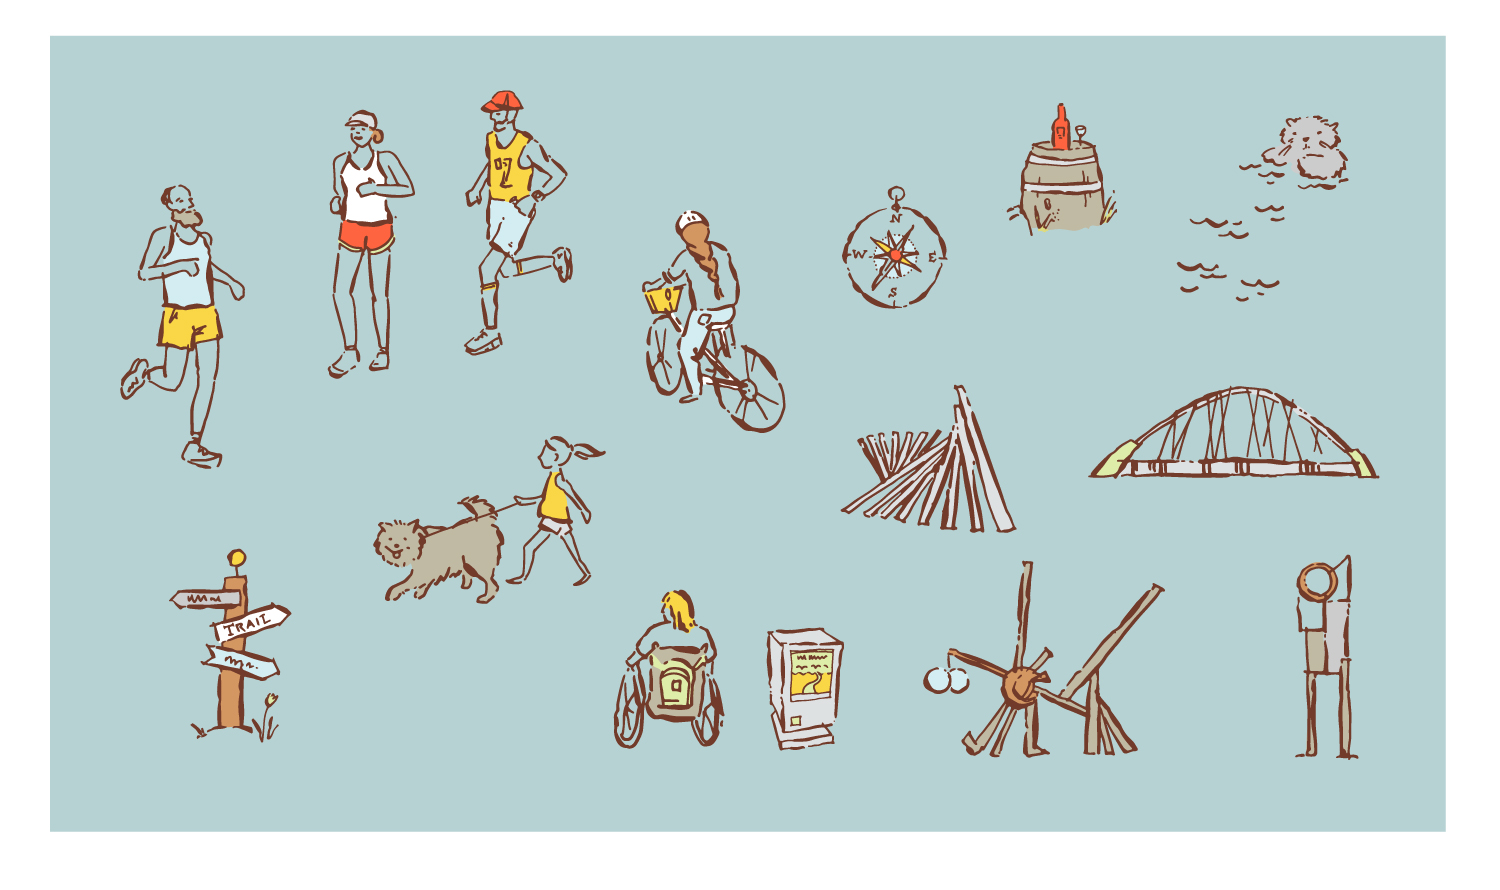 NickyOvitt_SFBayTrail_Illustrations.jpg